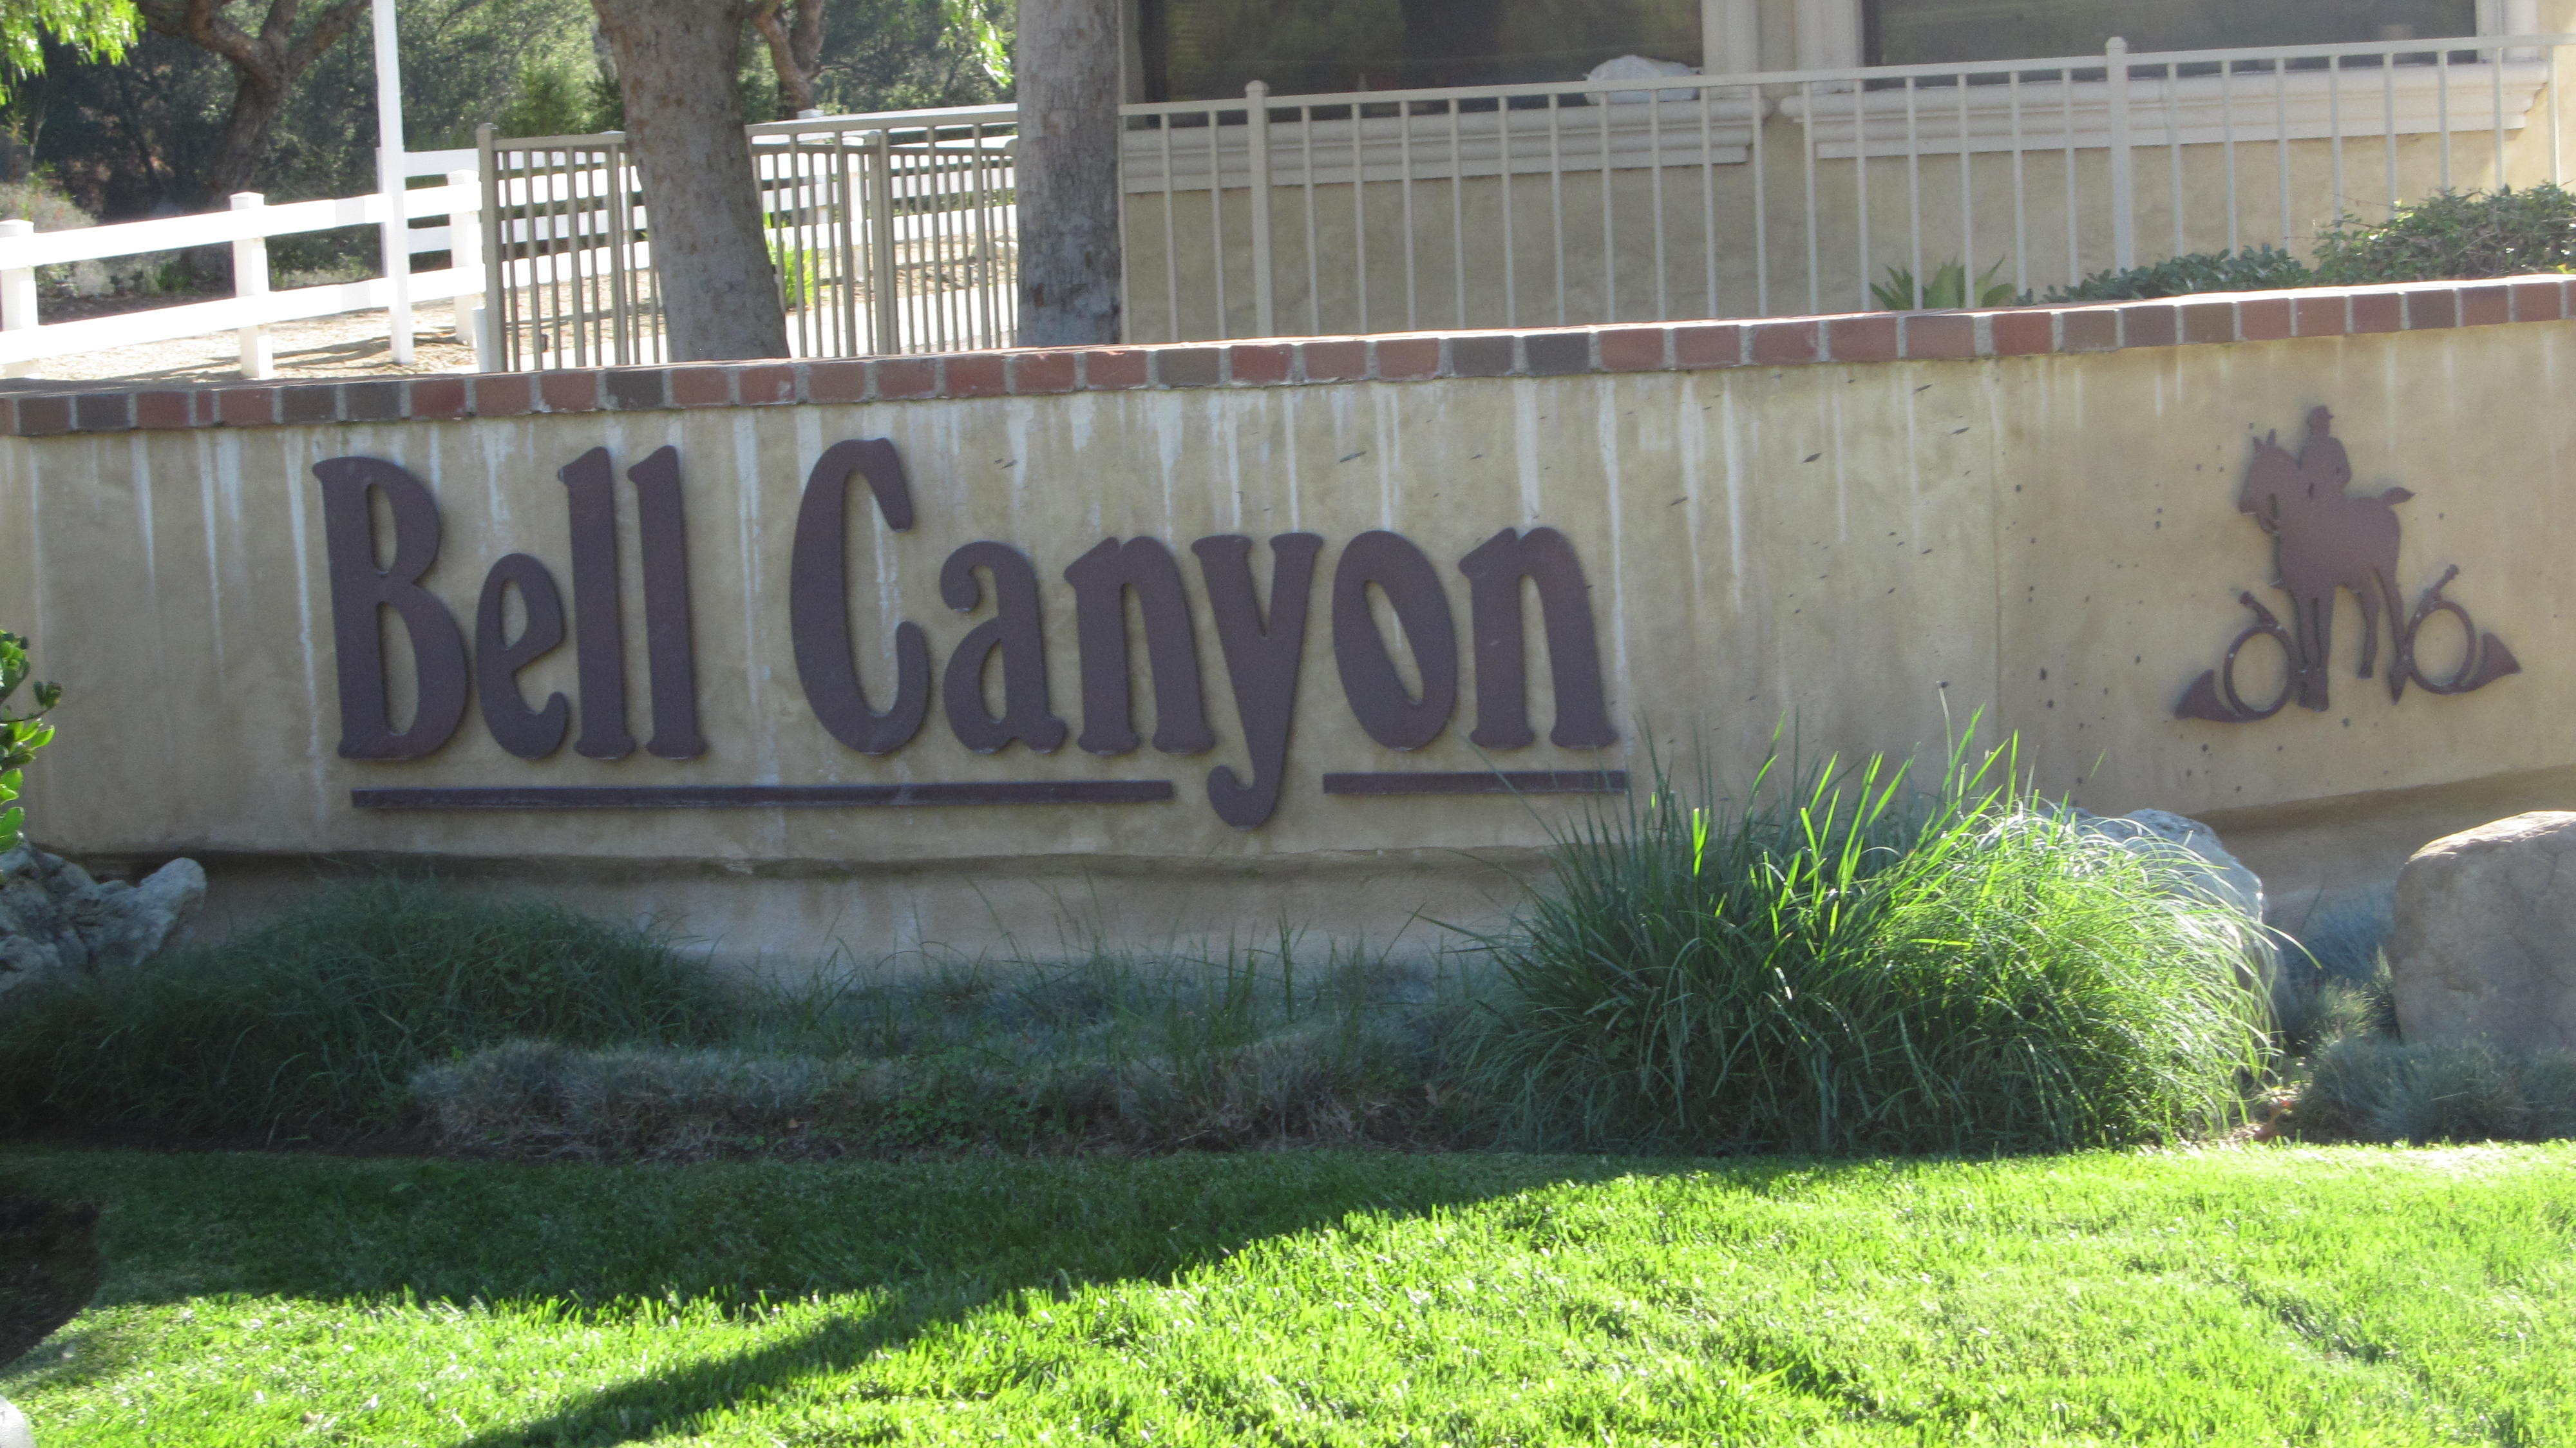 ADT Bell Canyon, CA Home Security Company